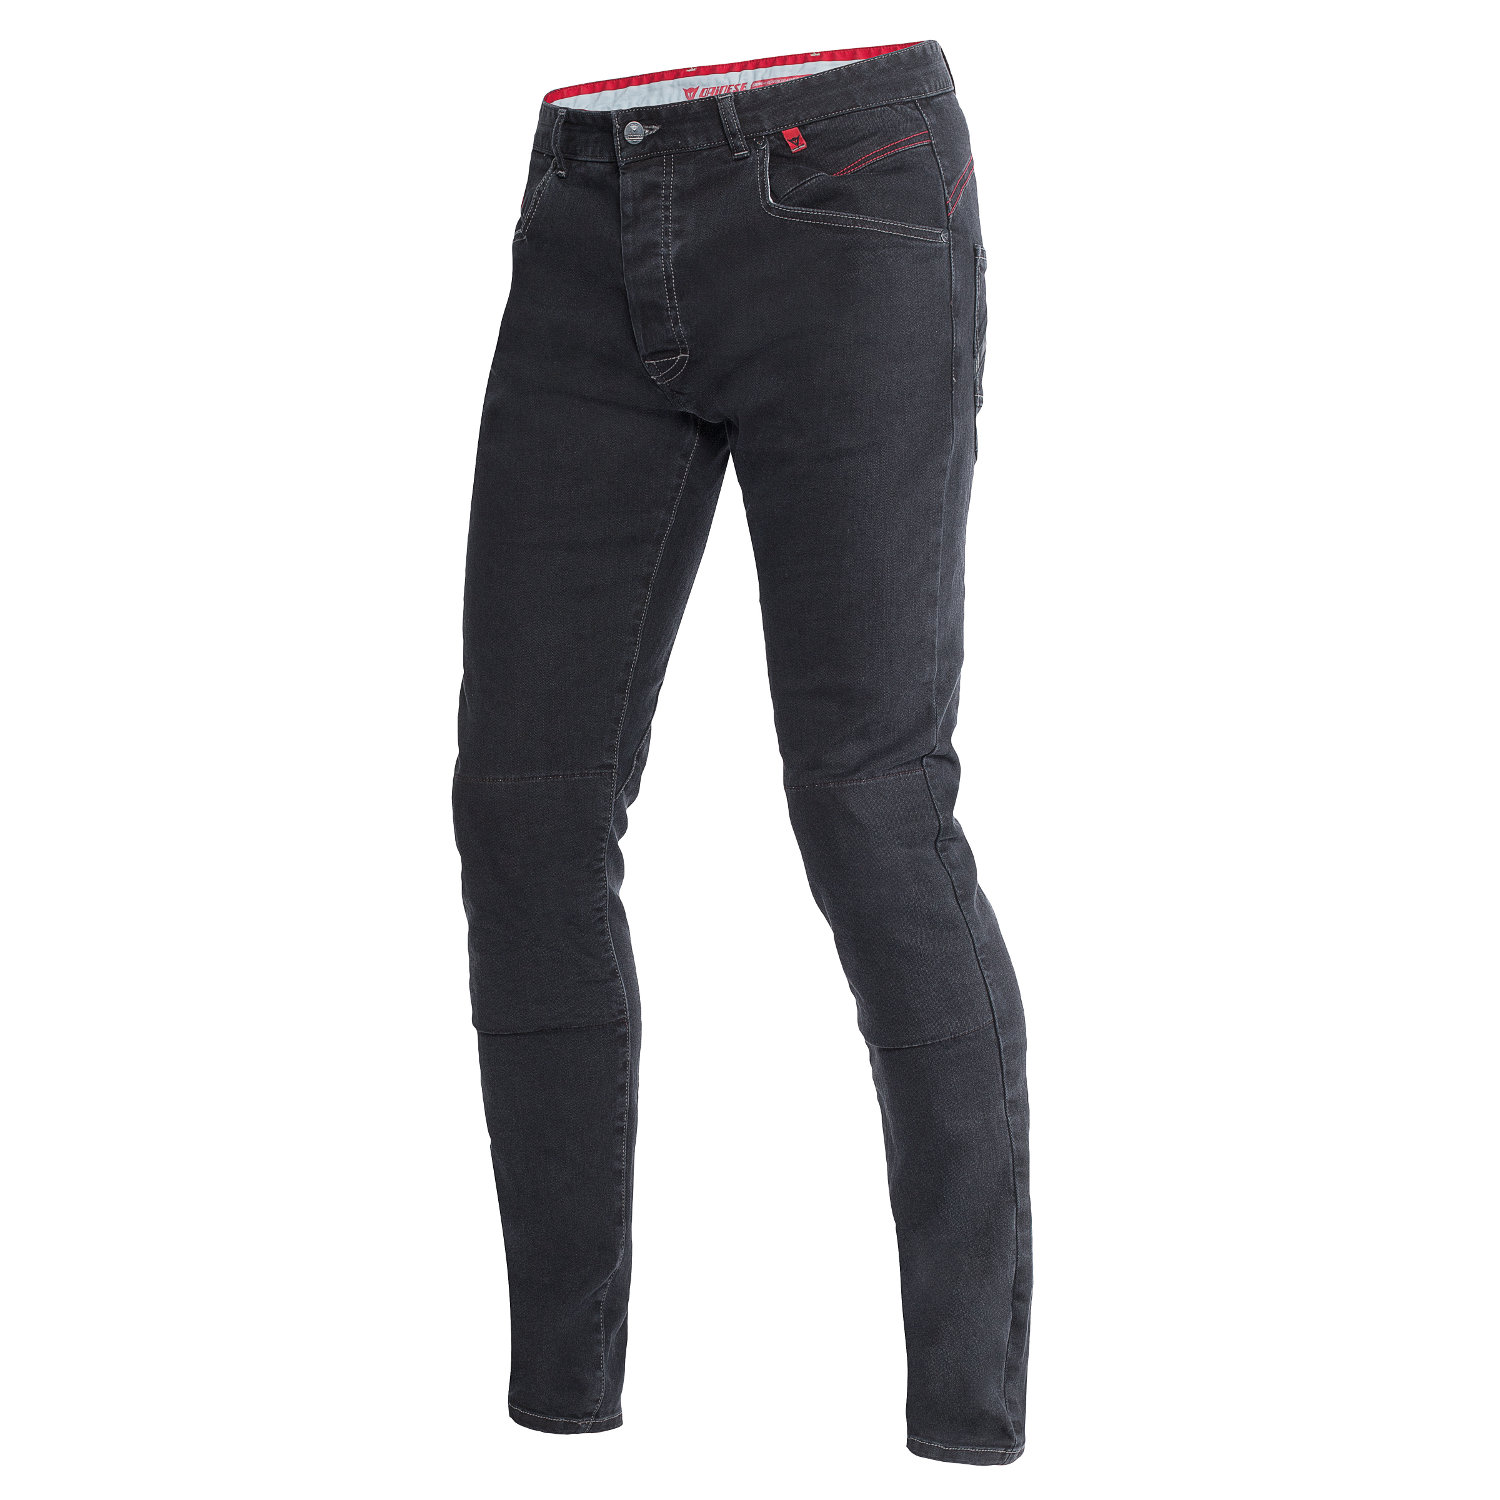 jeans sunville skinny noir dainese pantalon moto homme japauto accessoires. Black Bedroom Furniture Sets. Home Design Ideas